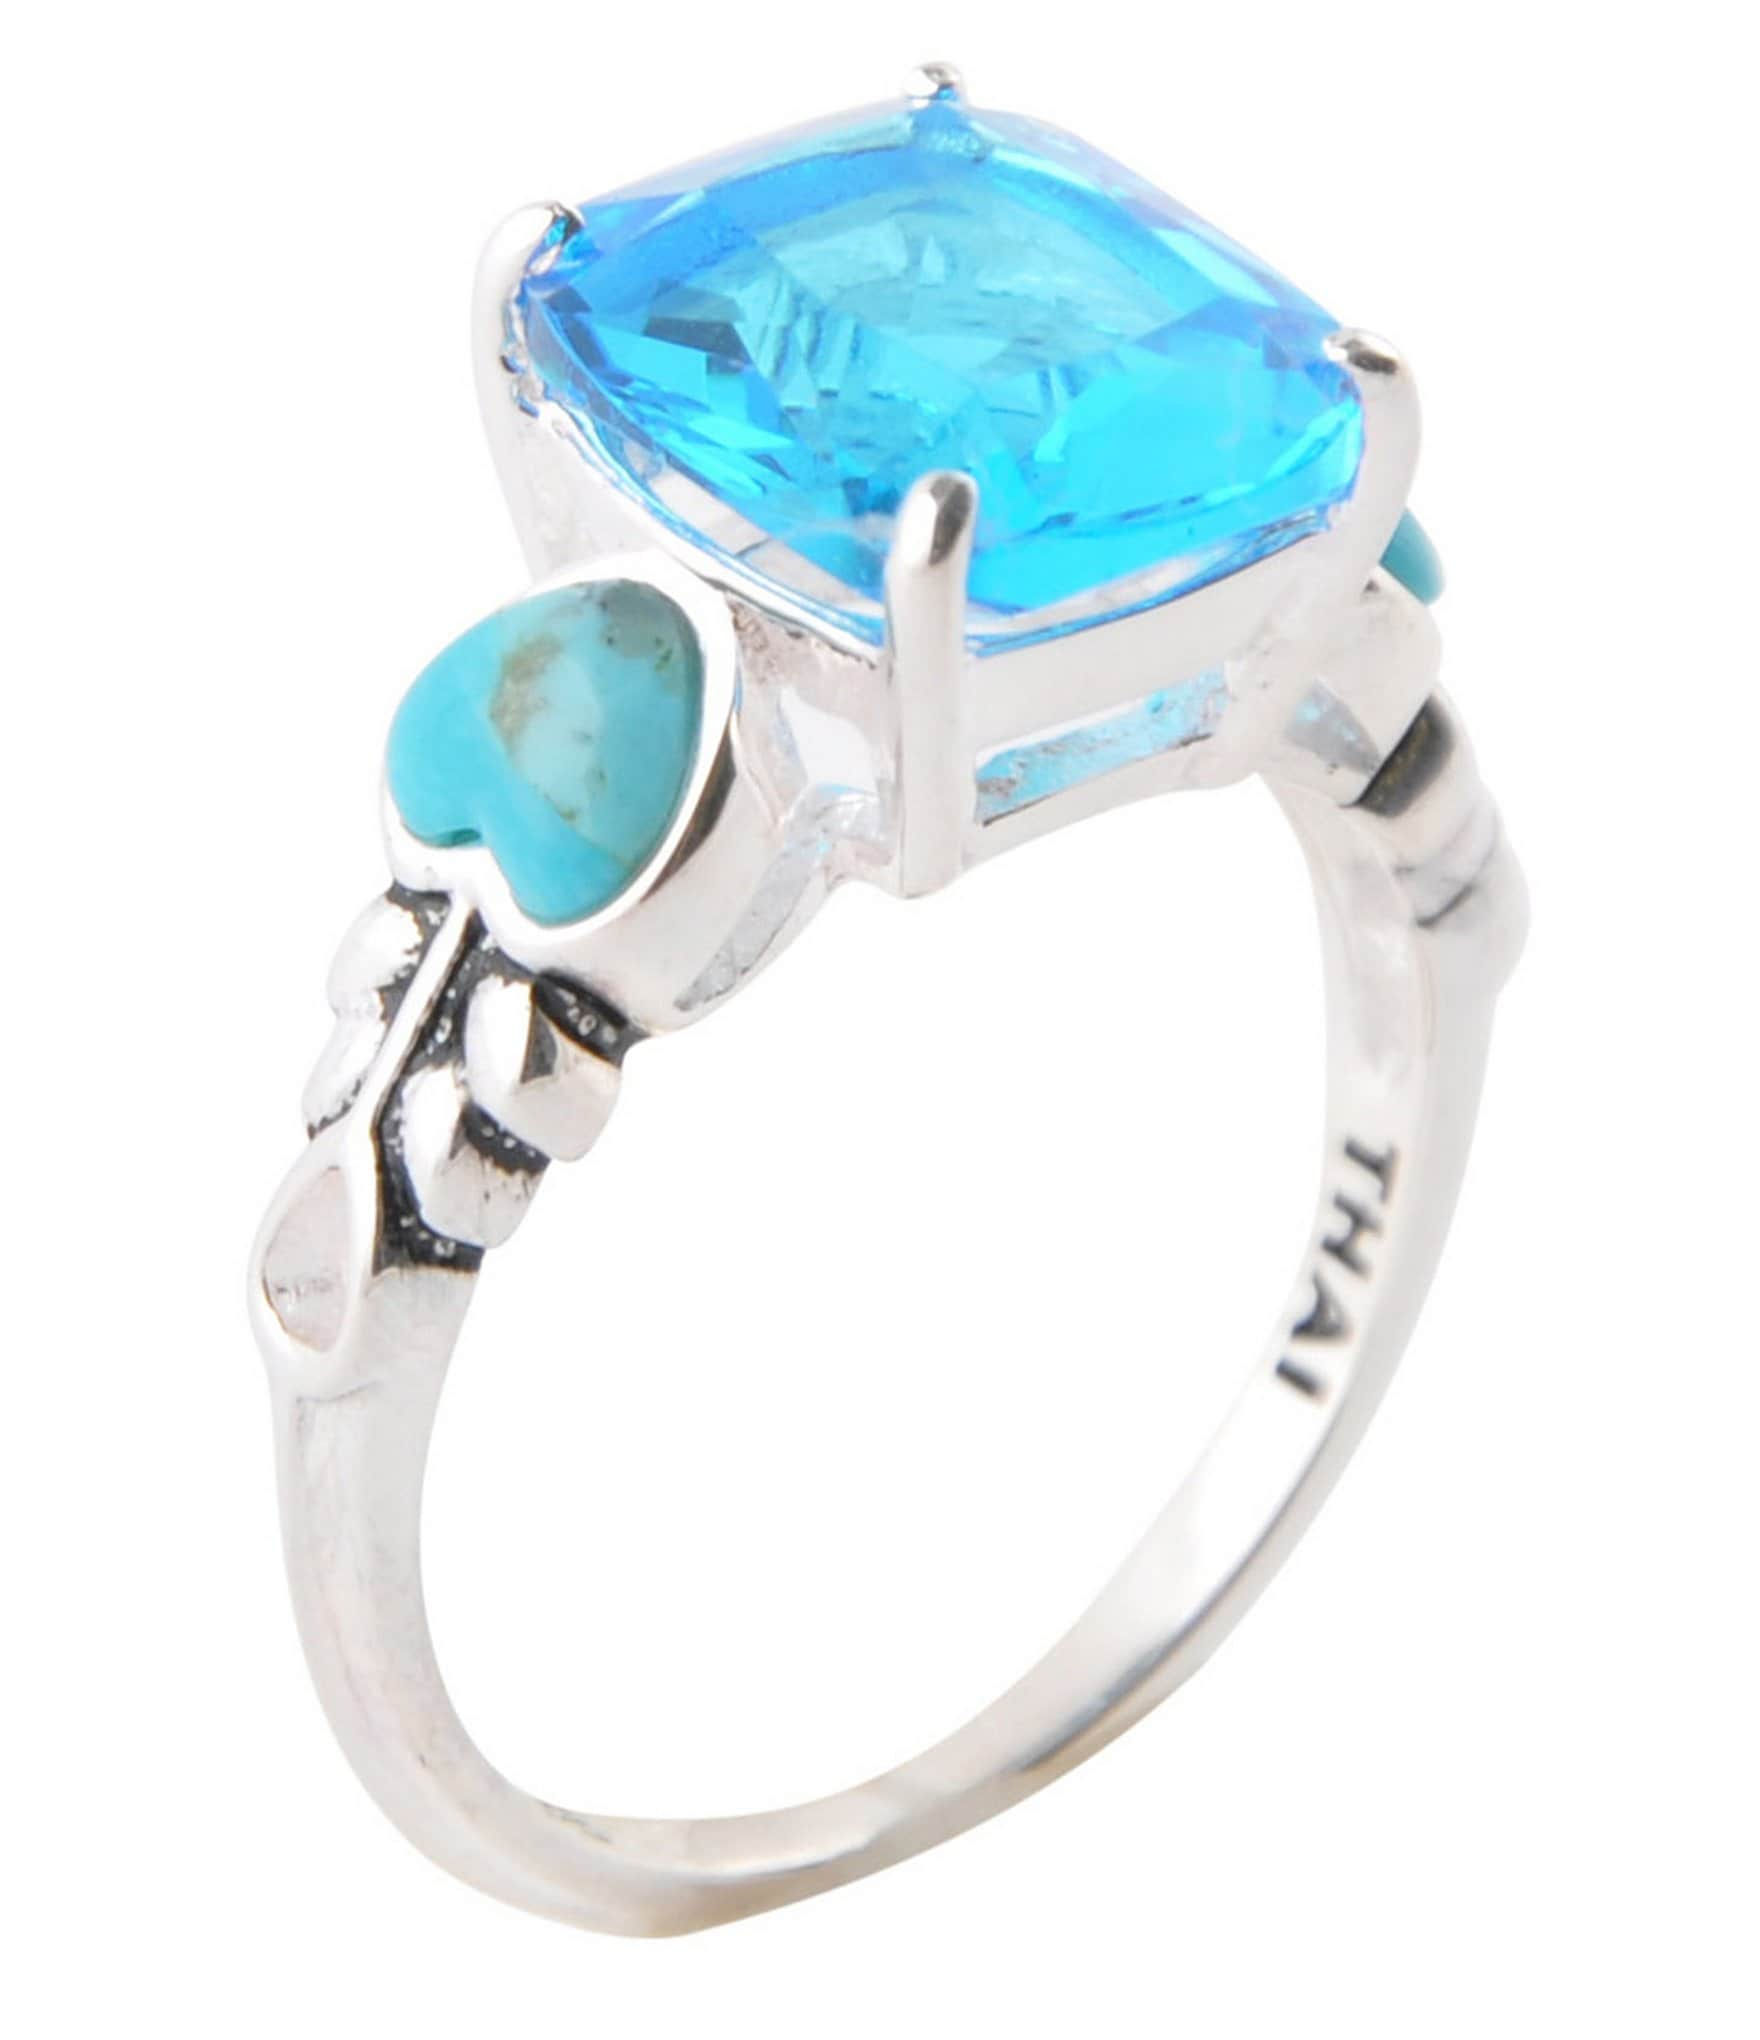 know for stone back meaning turquoise post to ring silver us rings do you